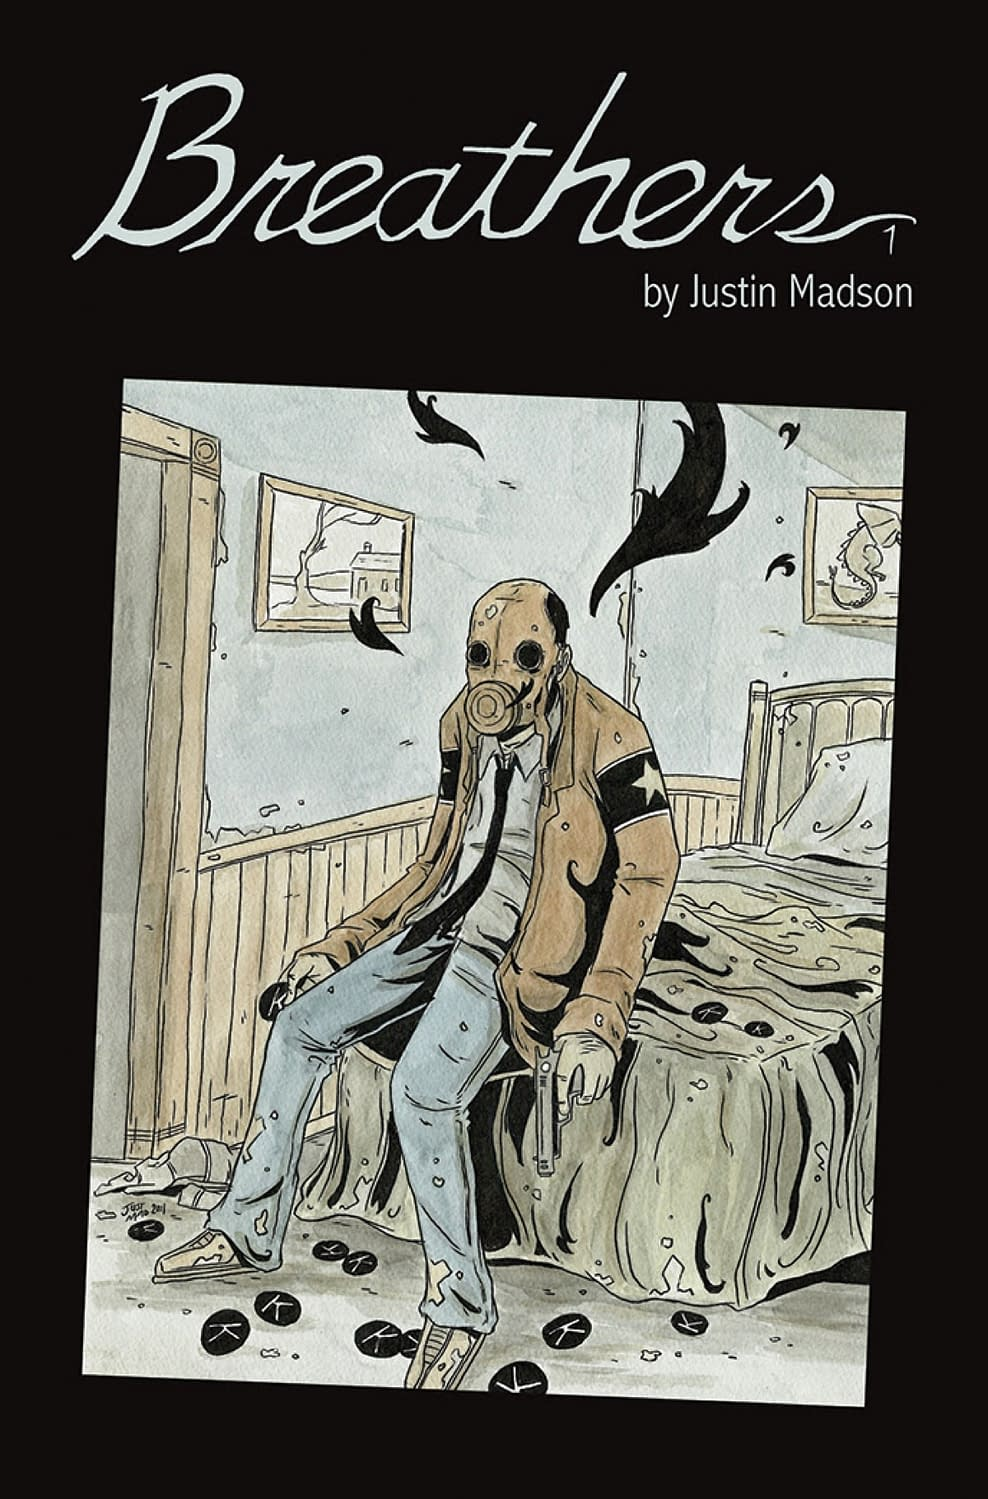 It's Alive! Launches IndieGoGo to Publish Justin Madson's Breathers